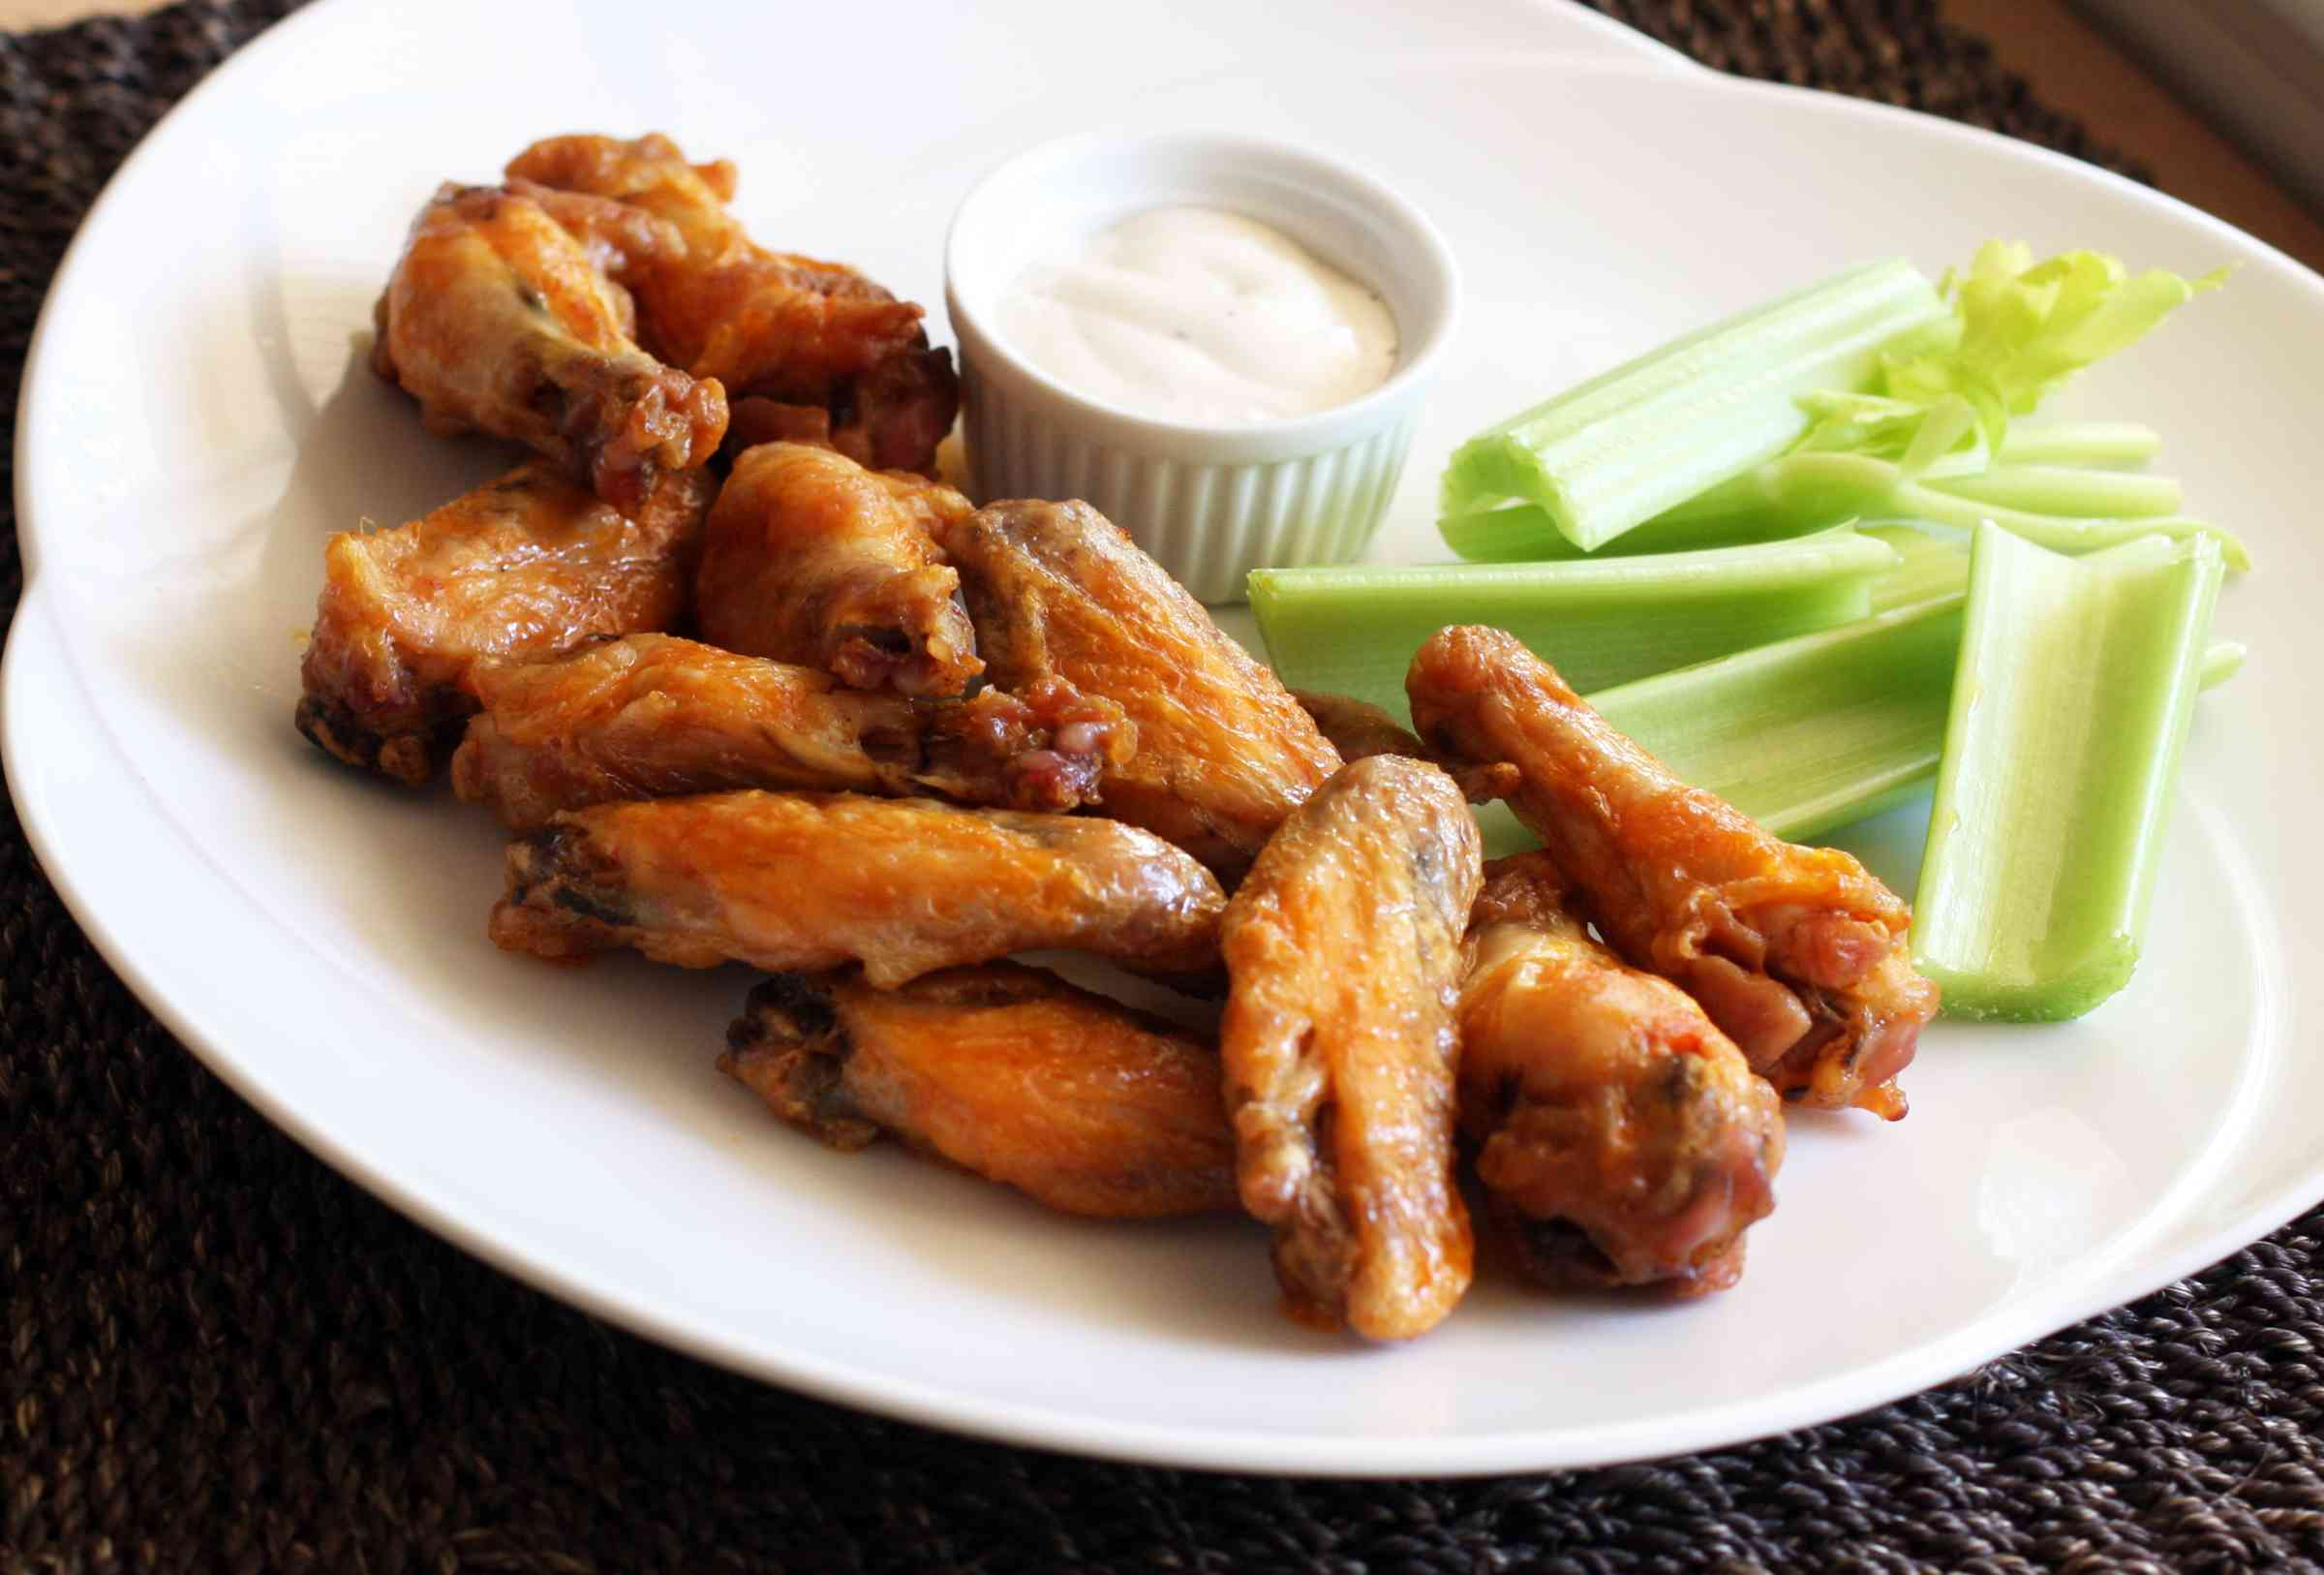 Baked Buffalo chicken wings with celery on a white plate